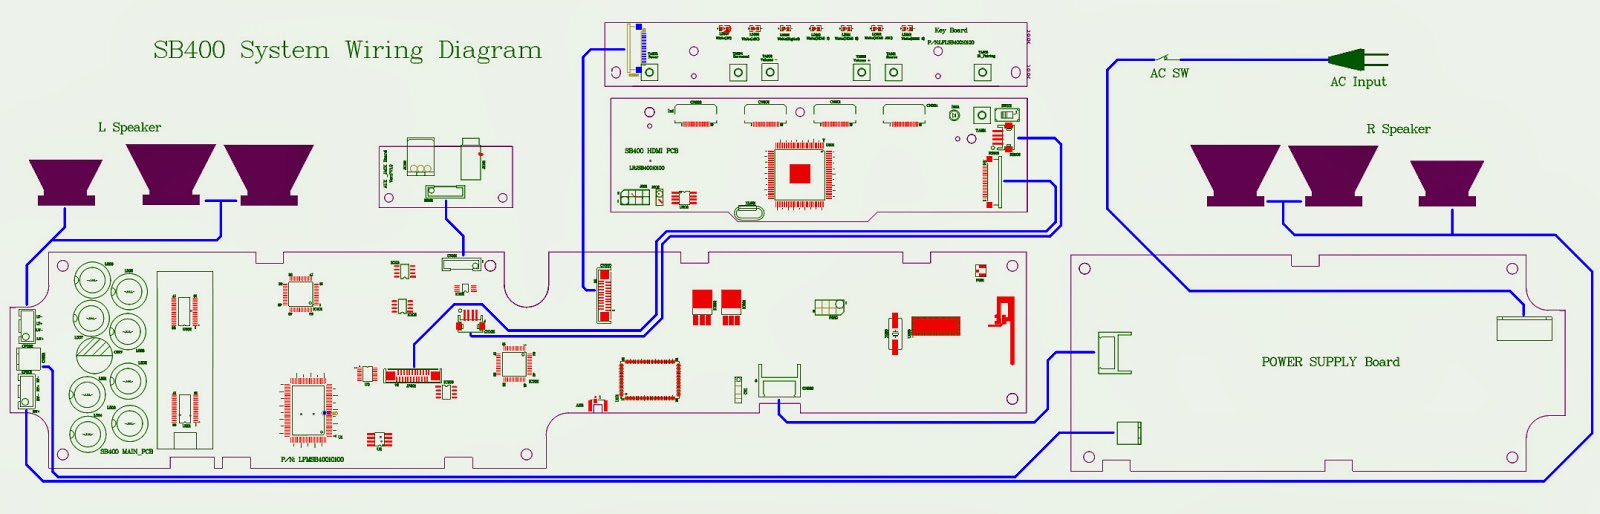 WIRING.bmp sound bar wiring diagram sound off pinnacle light bar wiring vdp sound bar wiring diagram at reclaimingppi.co